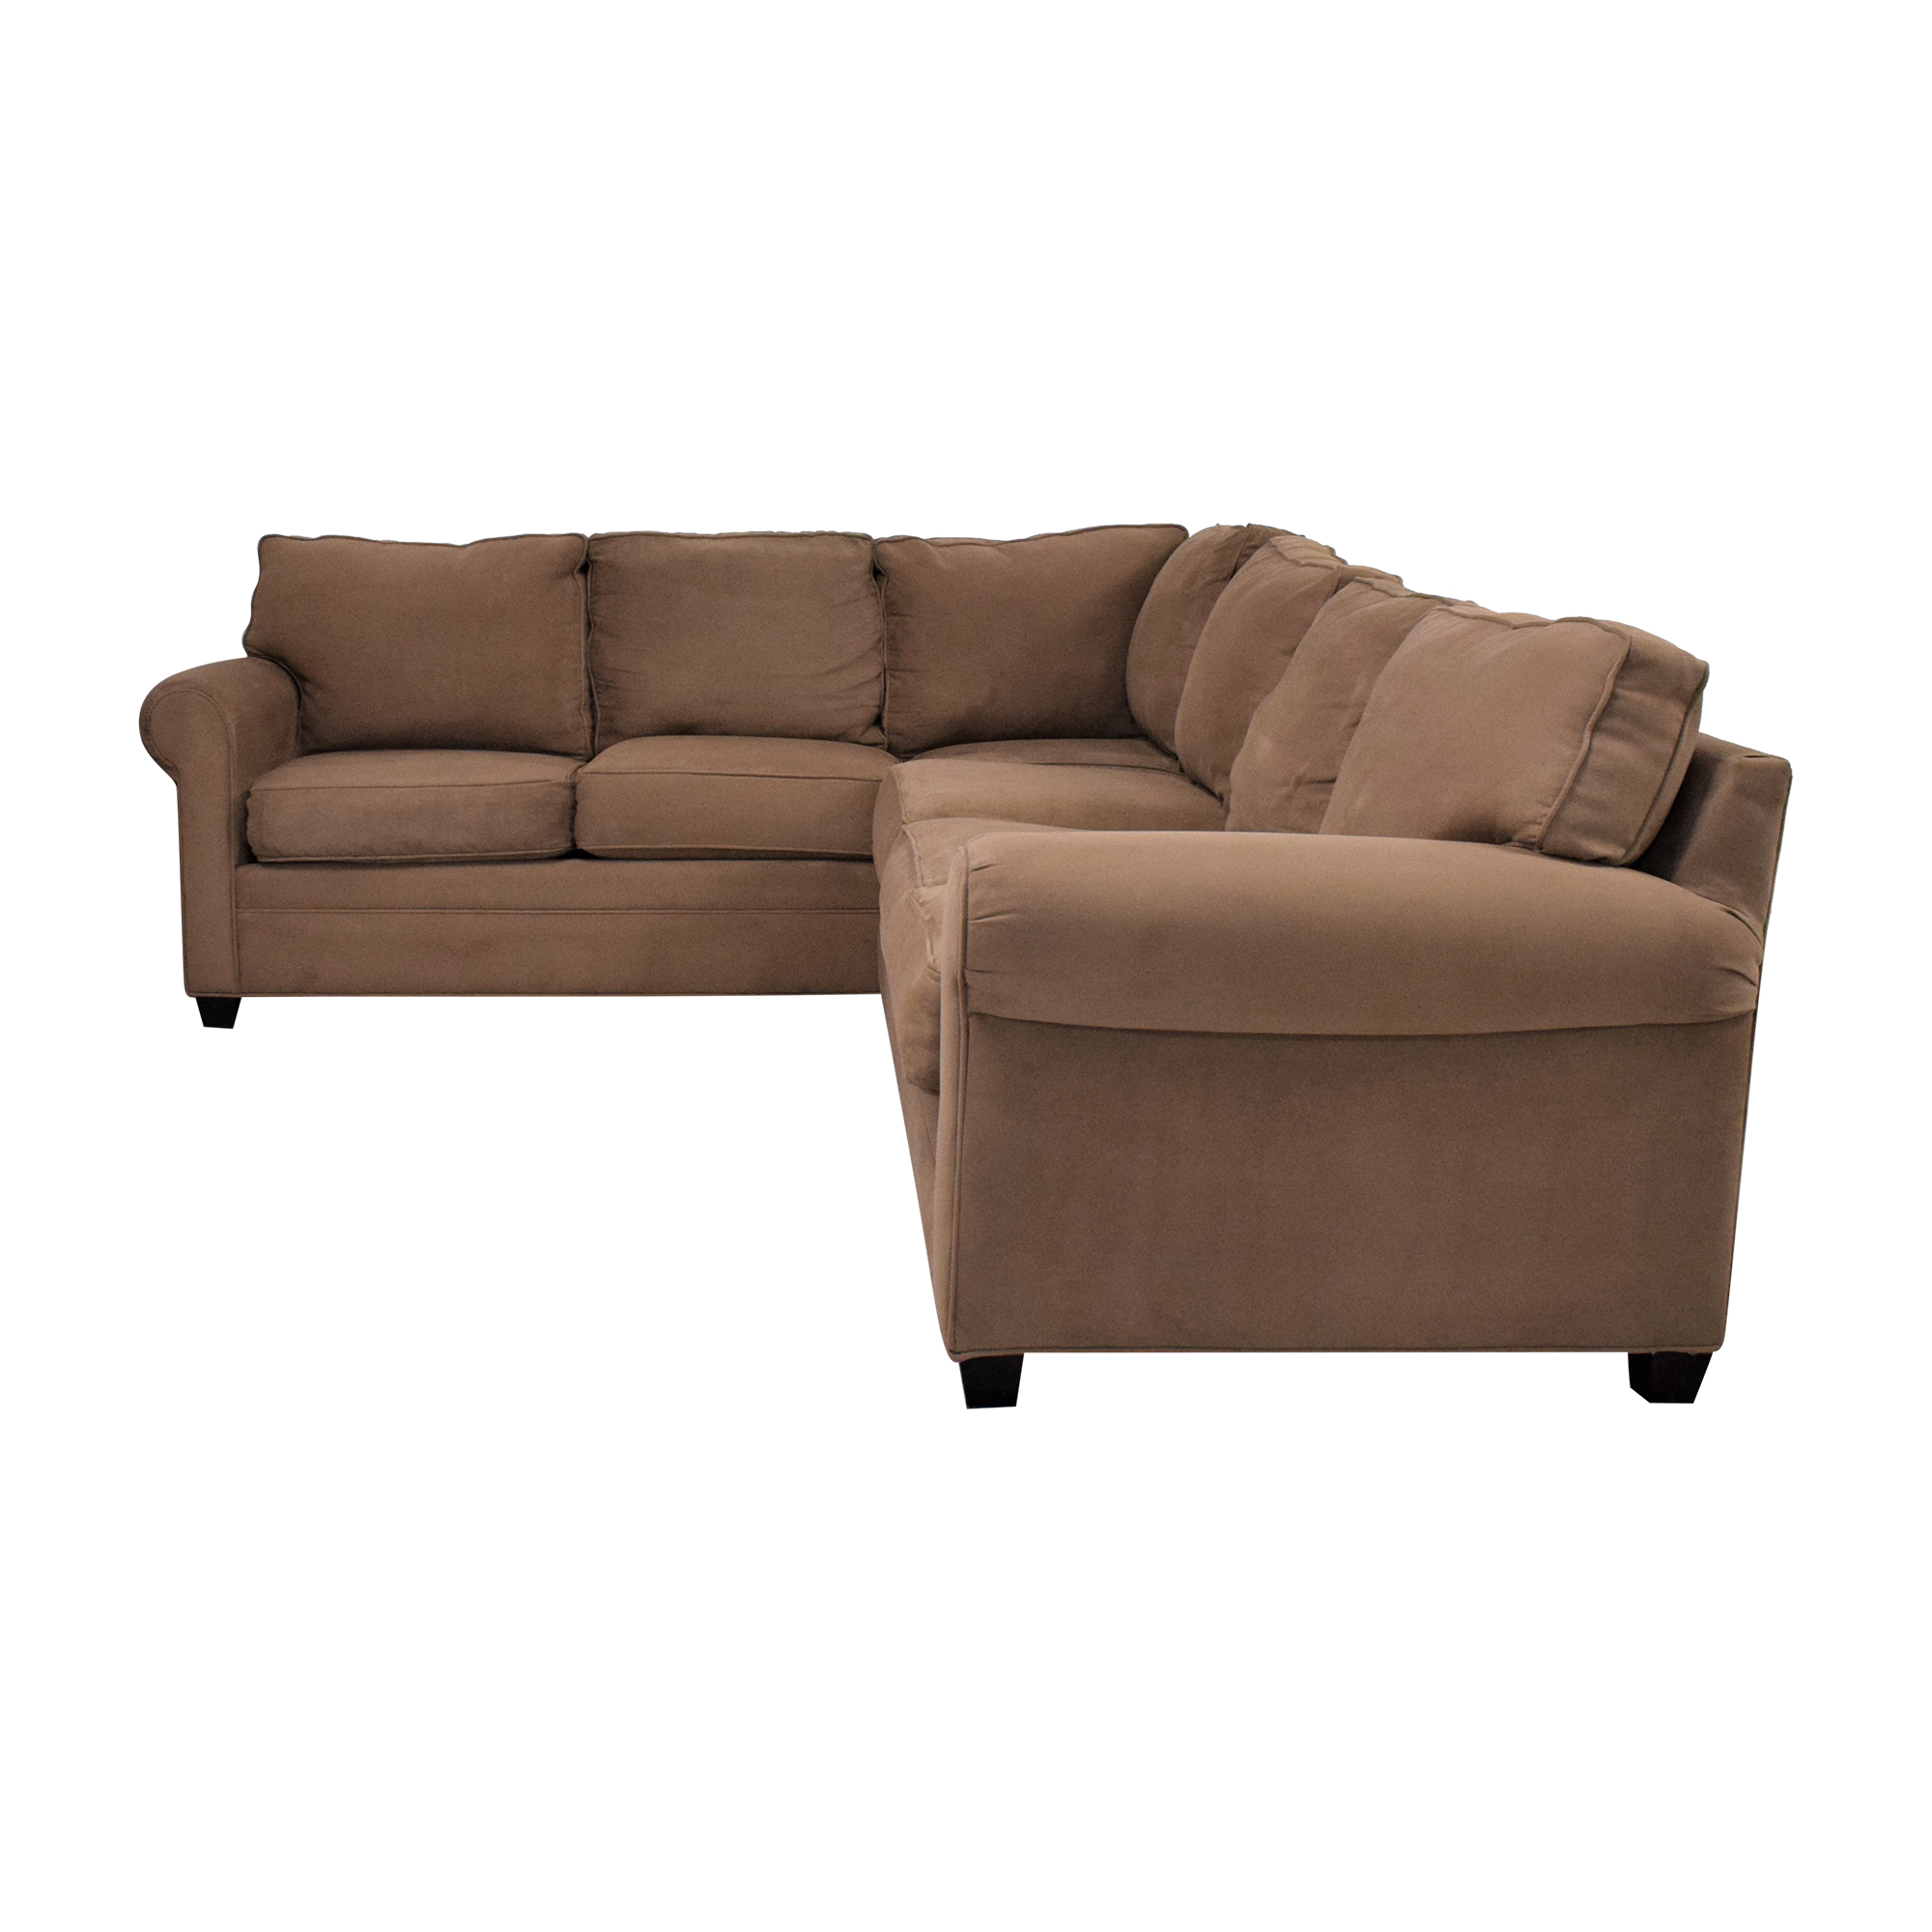 Raymour & Flanigan Raymour & Flanigan Sectional Sofa second hand